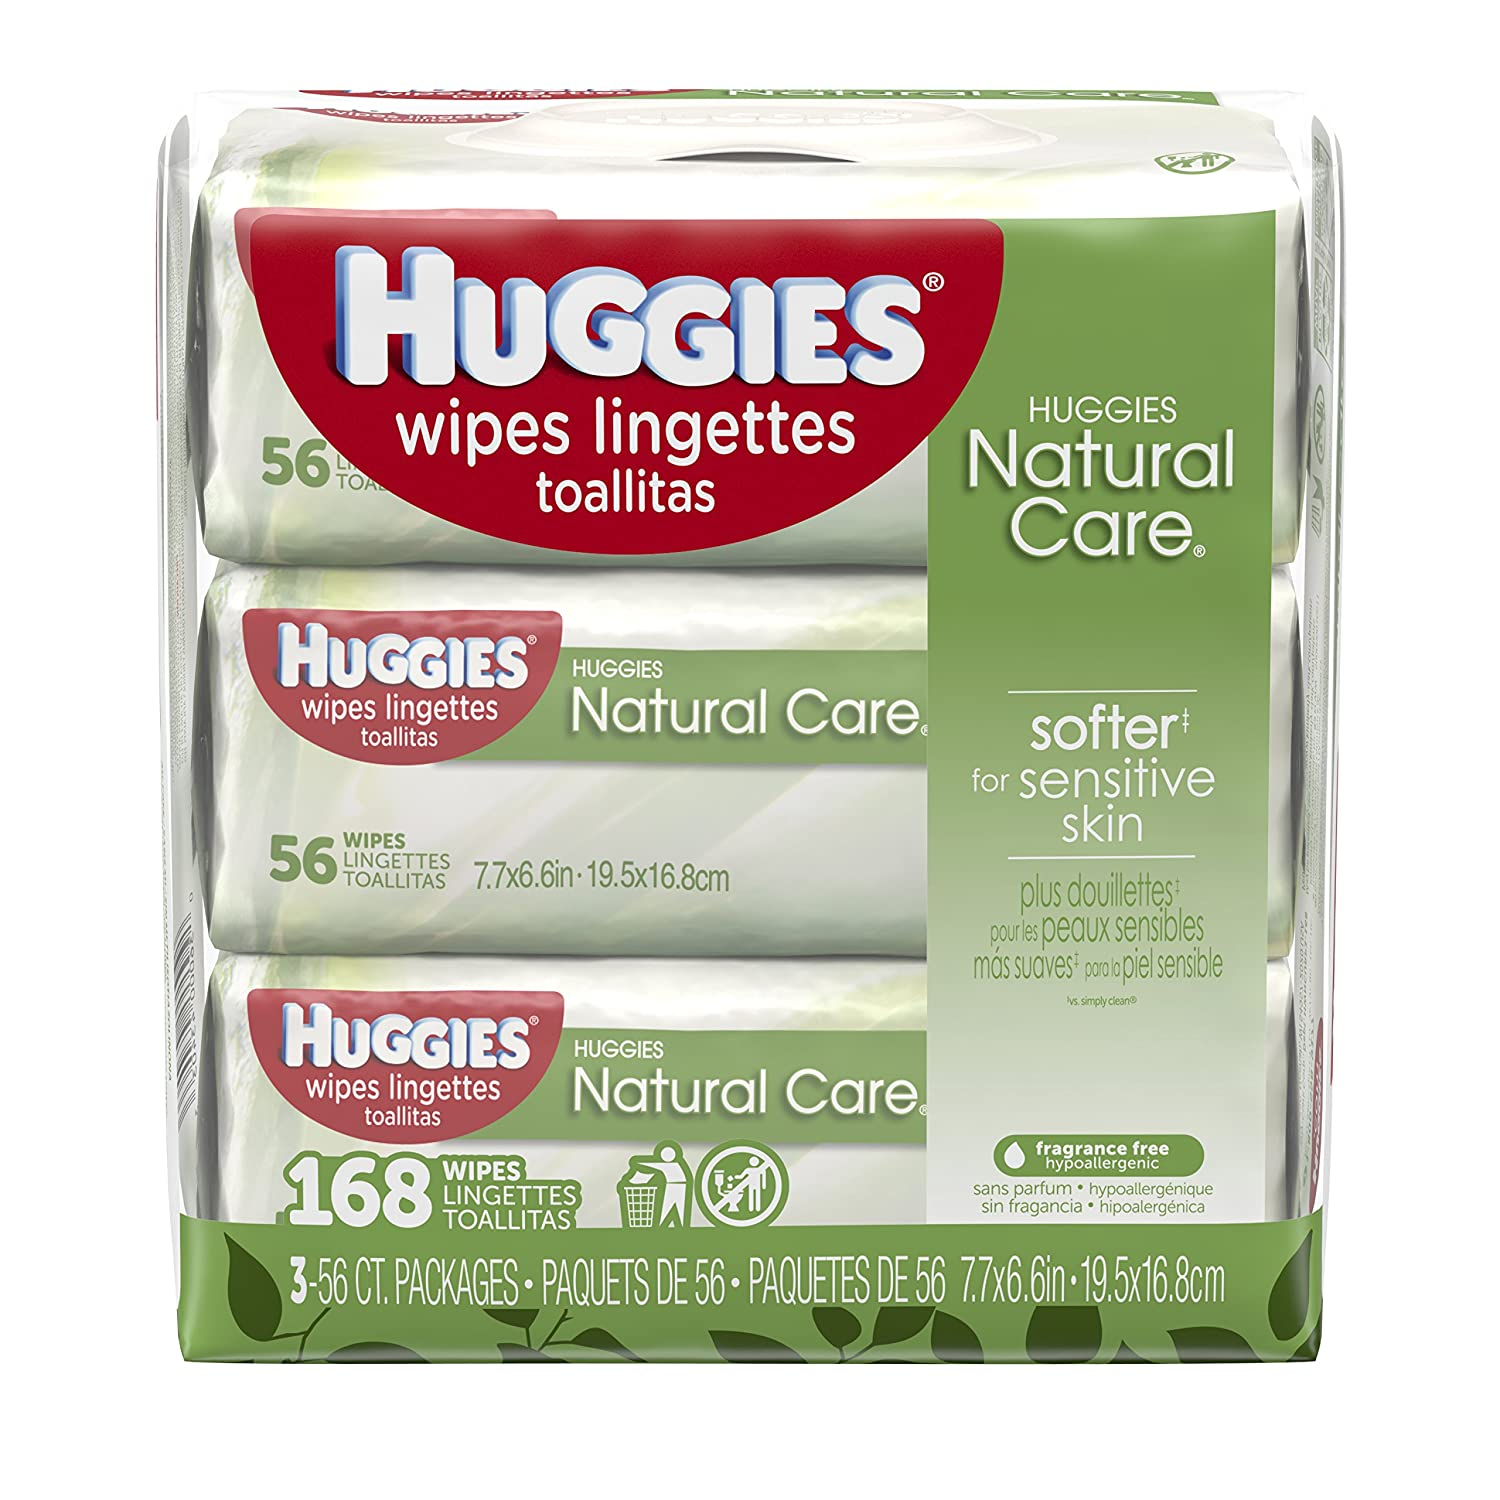 HUGGIES NATURAL CARE Fragrance-Free & Hypoallergenic Baby Wipes (3X Refill Packs, 168 Count) Kimberly-Clark Corp. CA